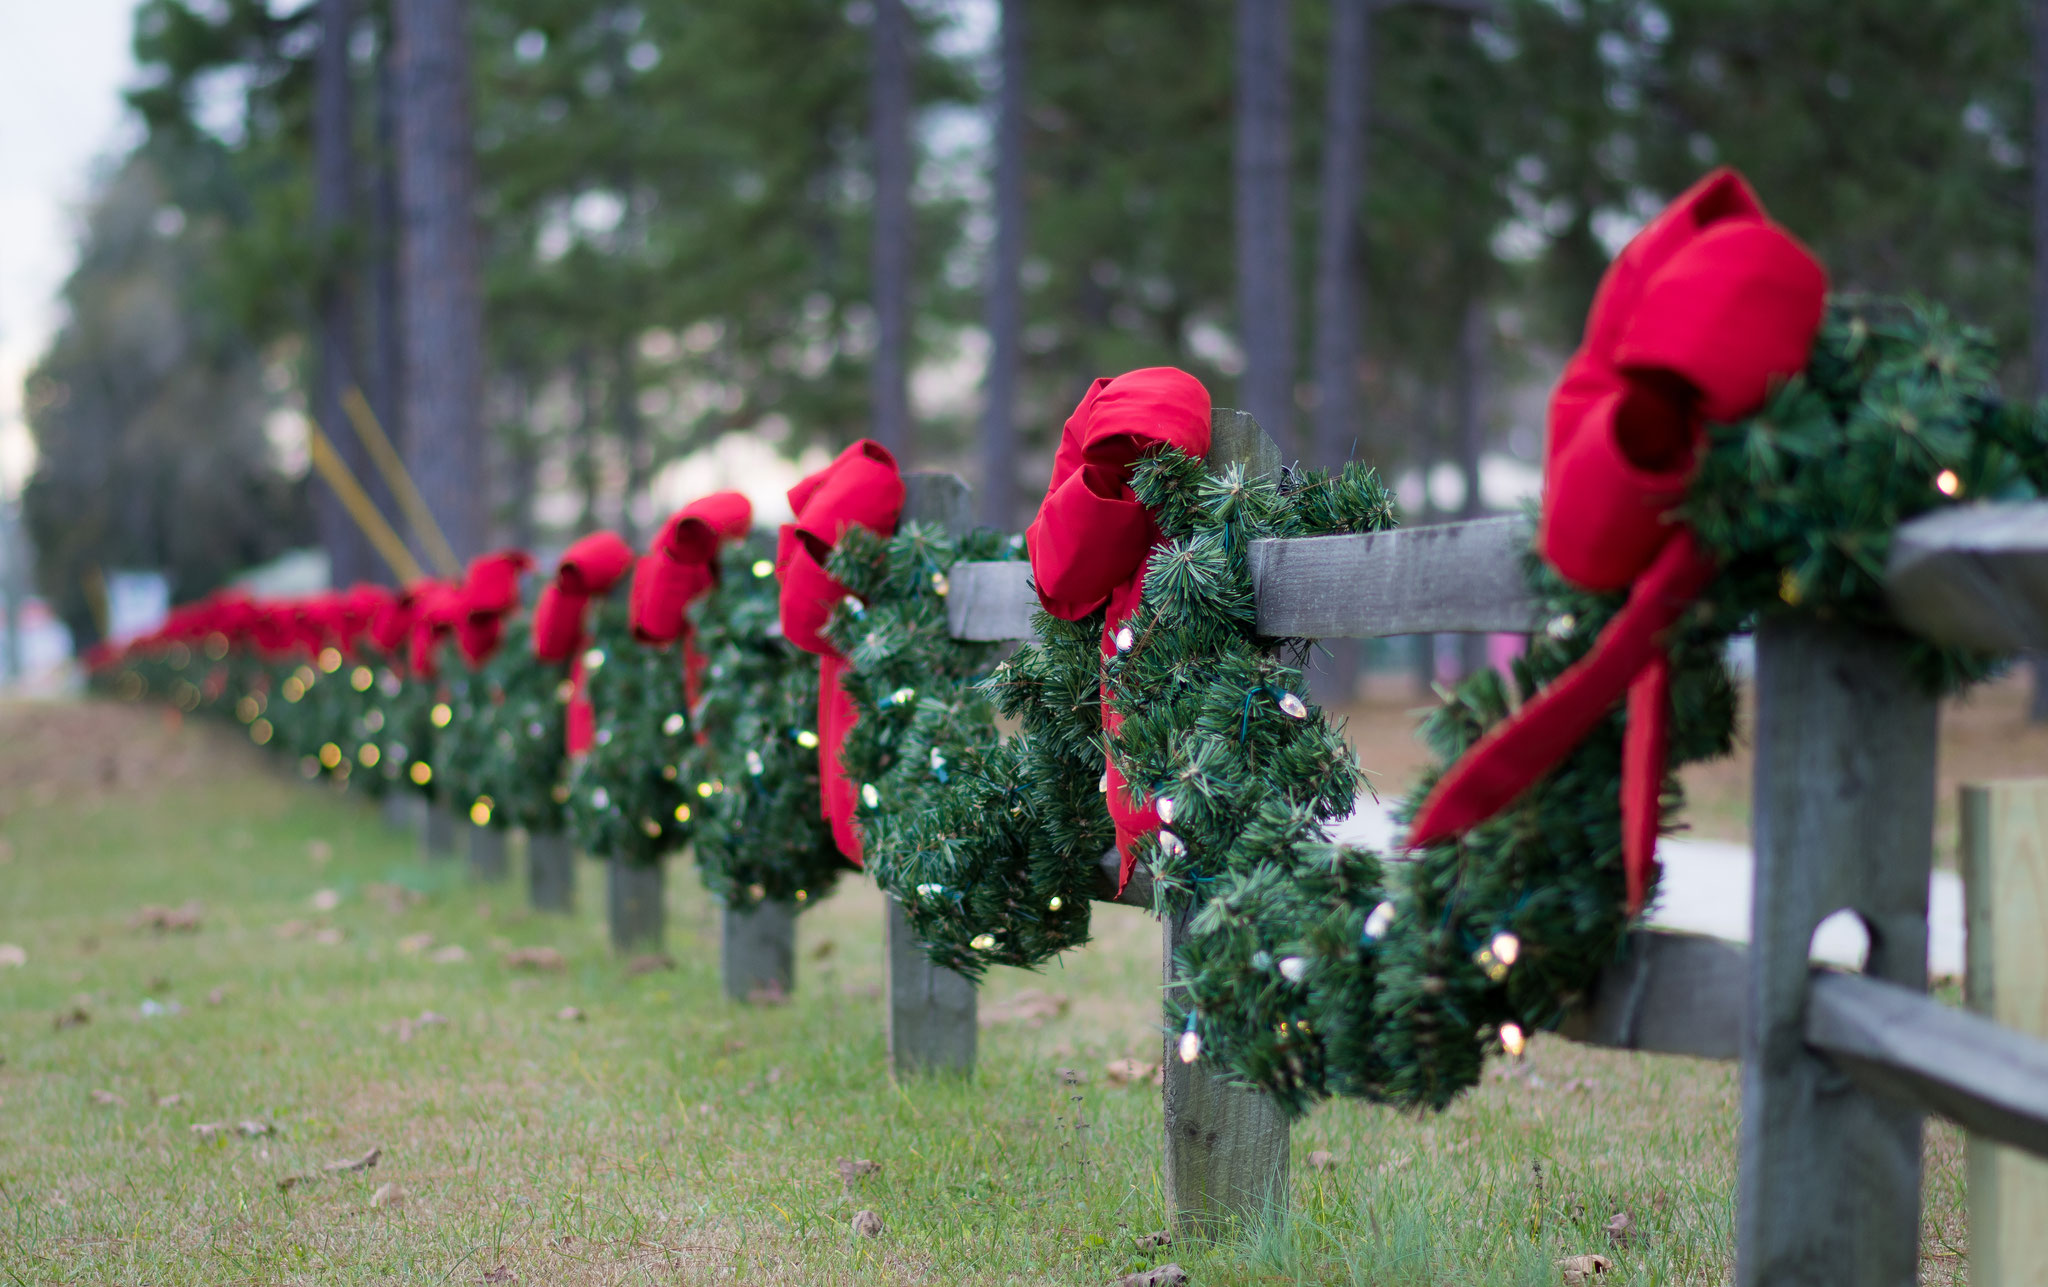 outdoor commercial wholesale christmas bows decorations burrindustriesllc - Wholesale Christmas Decorations Distributors